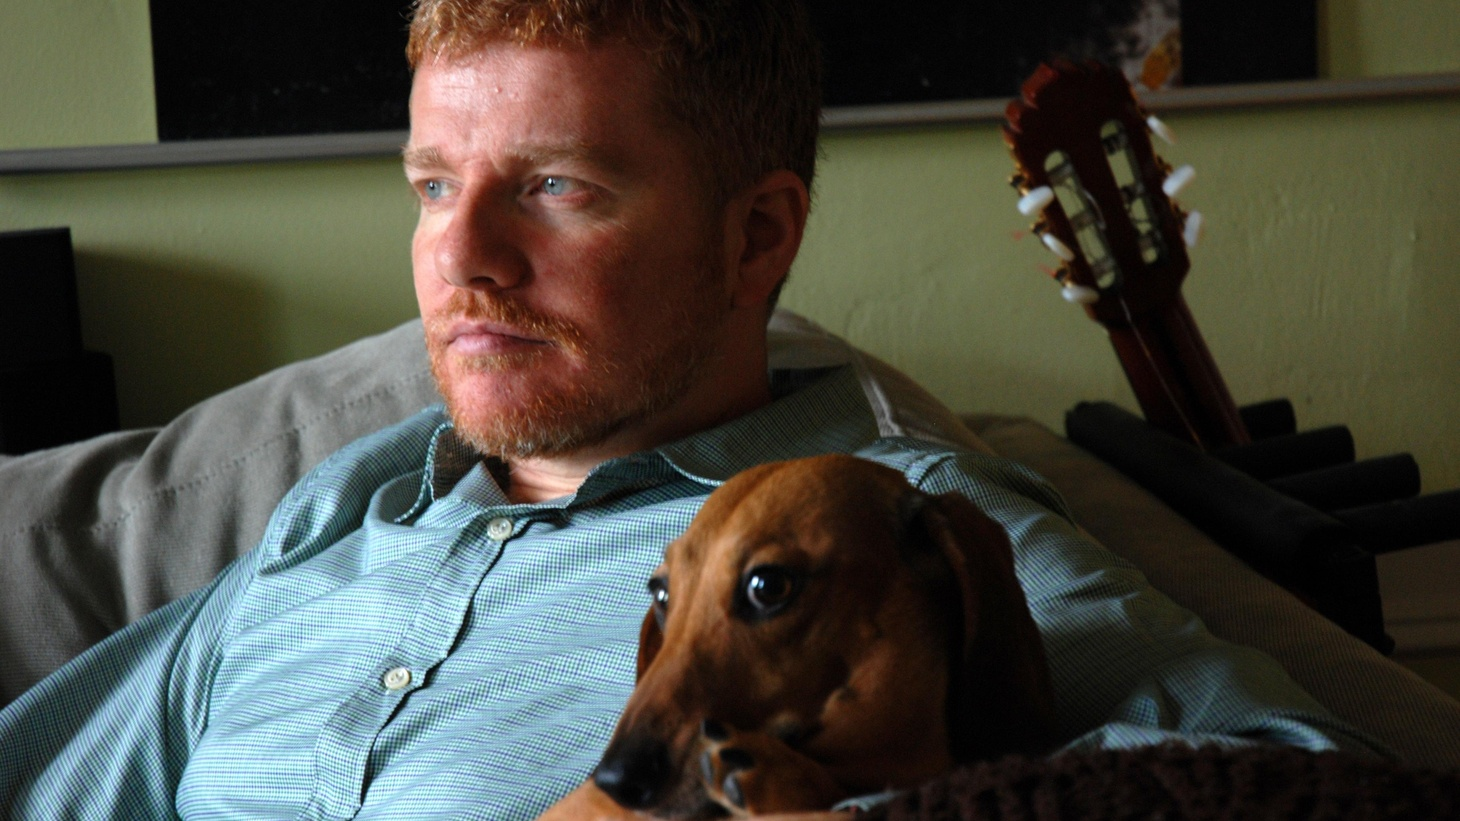 AC Newman of The New Pornographers does his solo thing on Morning Becomes Eclectic at 11:15am.